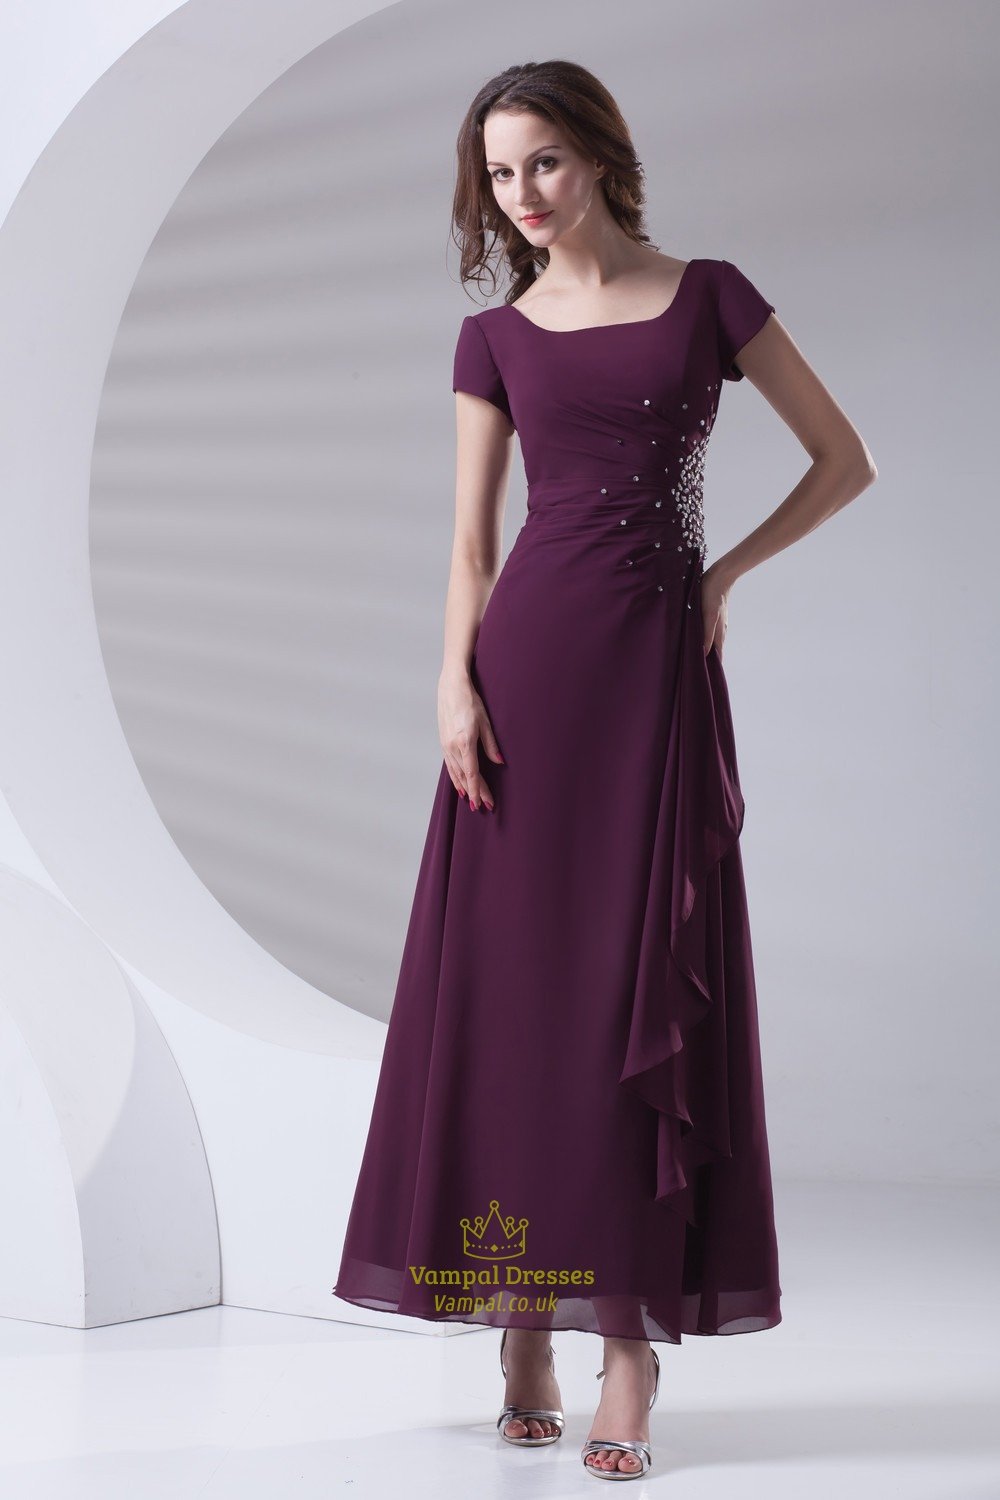 Modern Grape Square Beading Pleated Ankle Length Chiffon Mother Of Bride Dress | Vampal Dresses